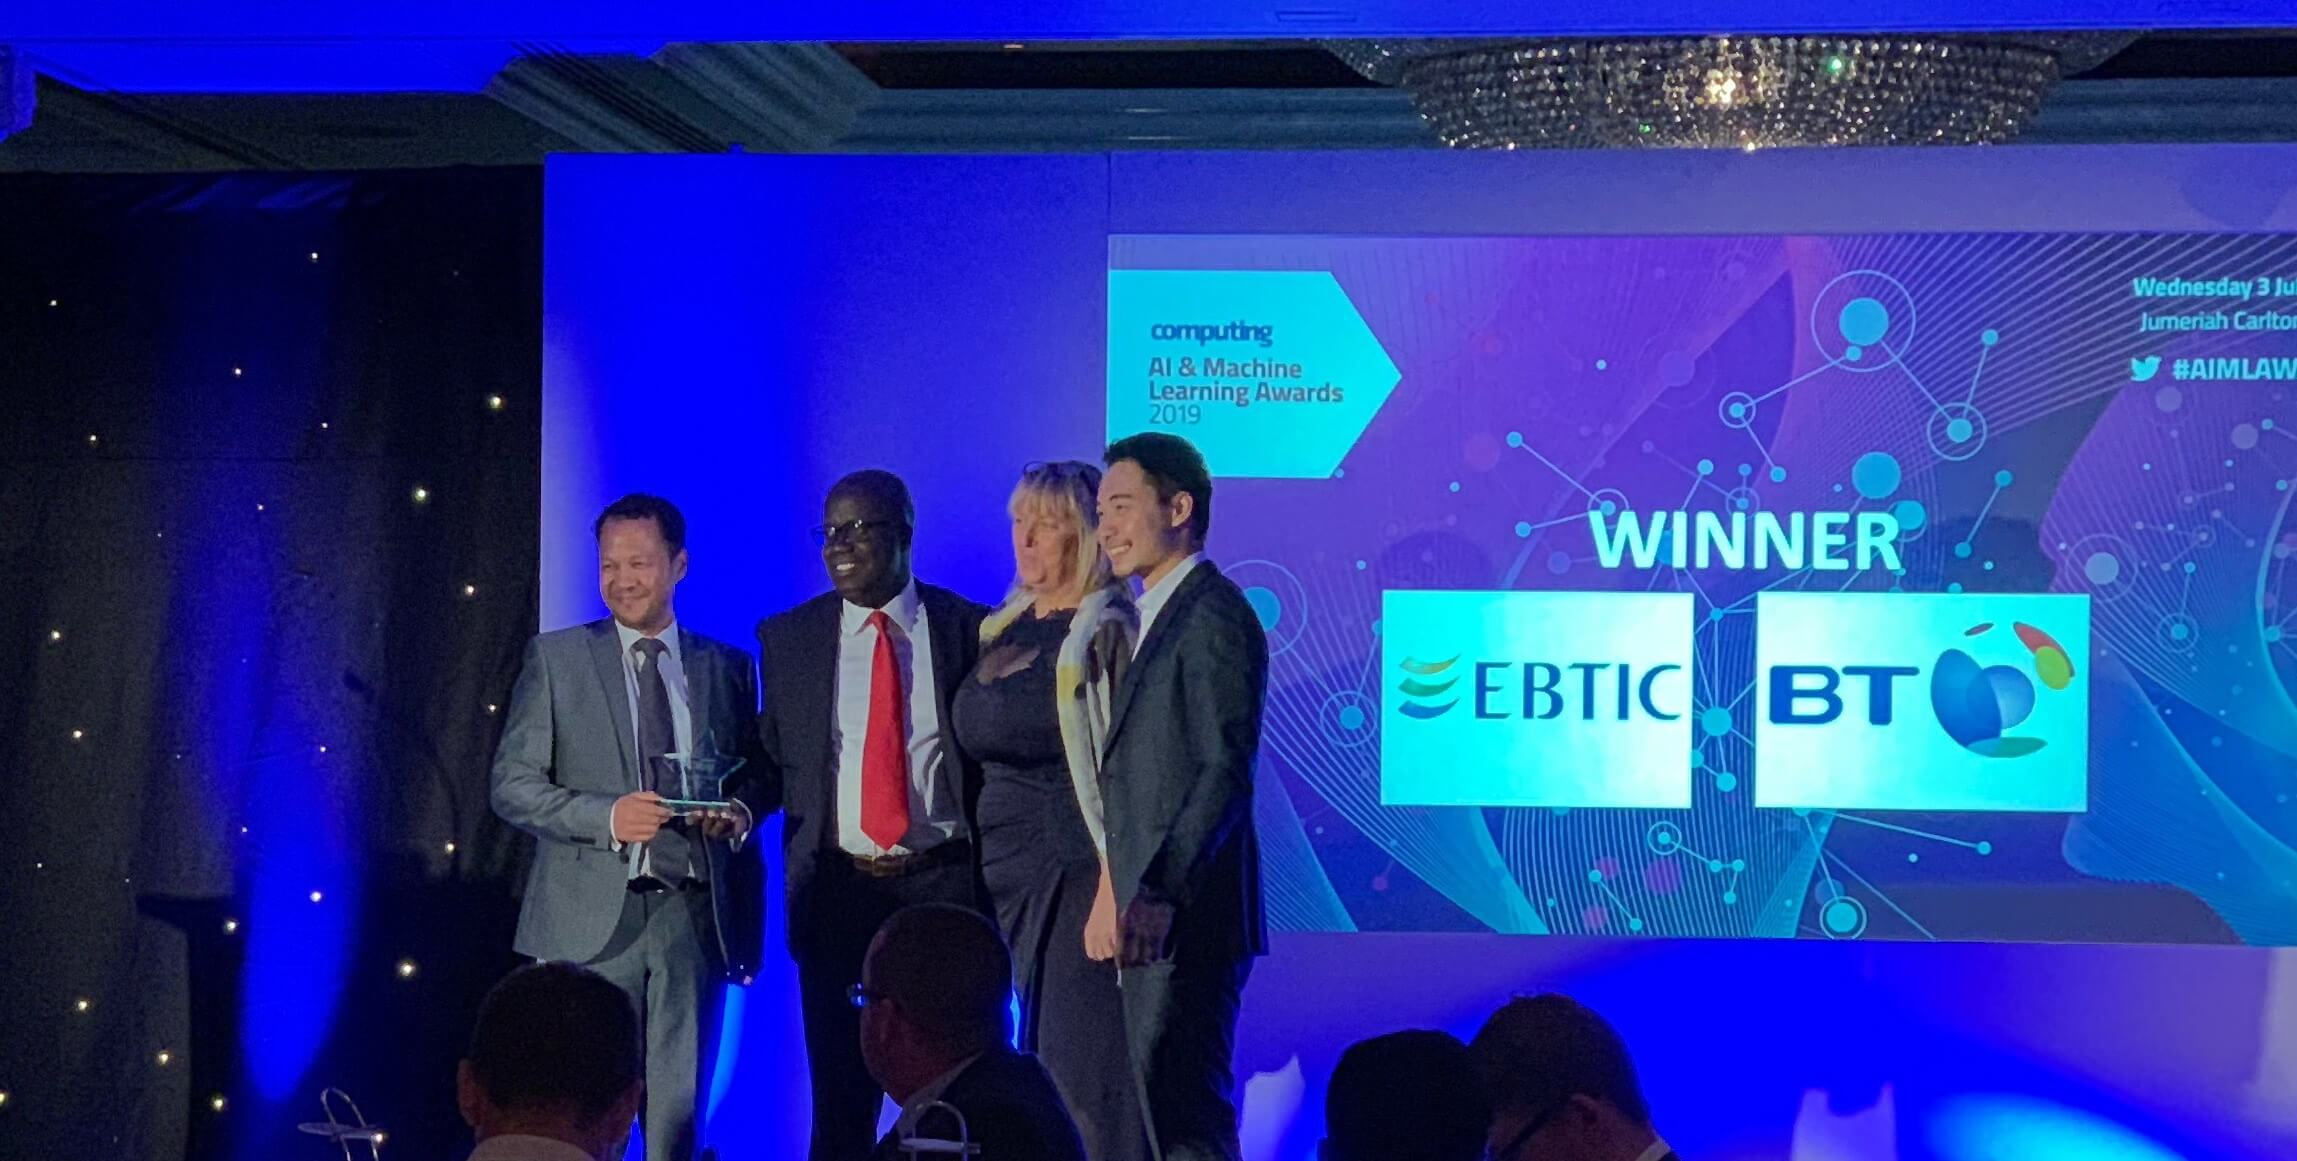 EBTIC Wins Two Awards at Computing AI & ML Machine Learning Awards 2019 for Intuitu Project